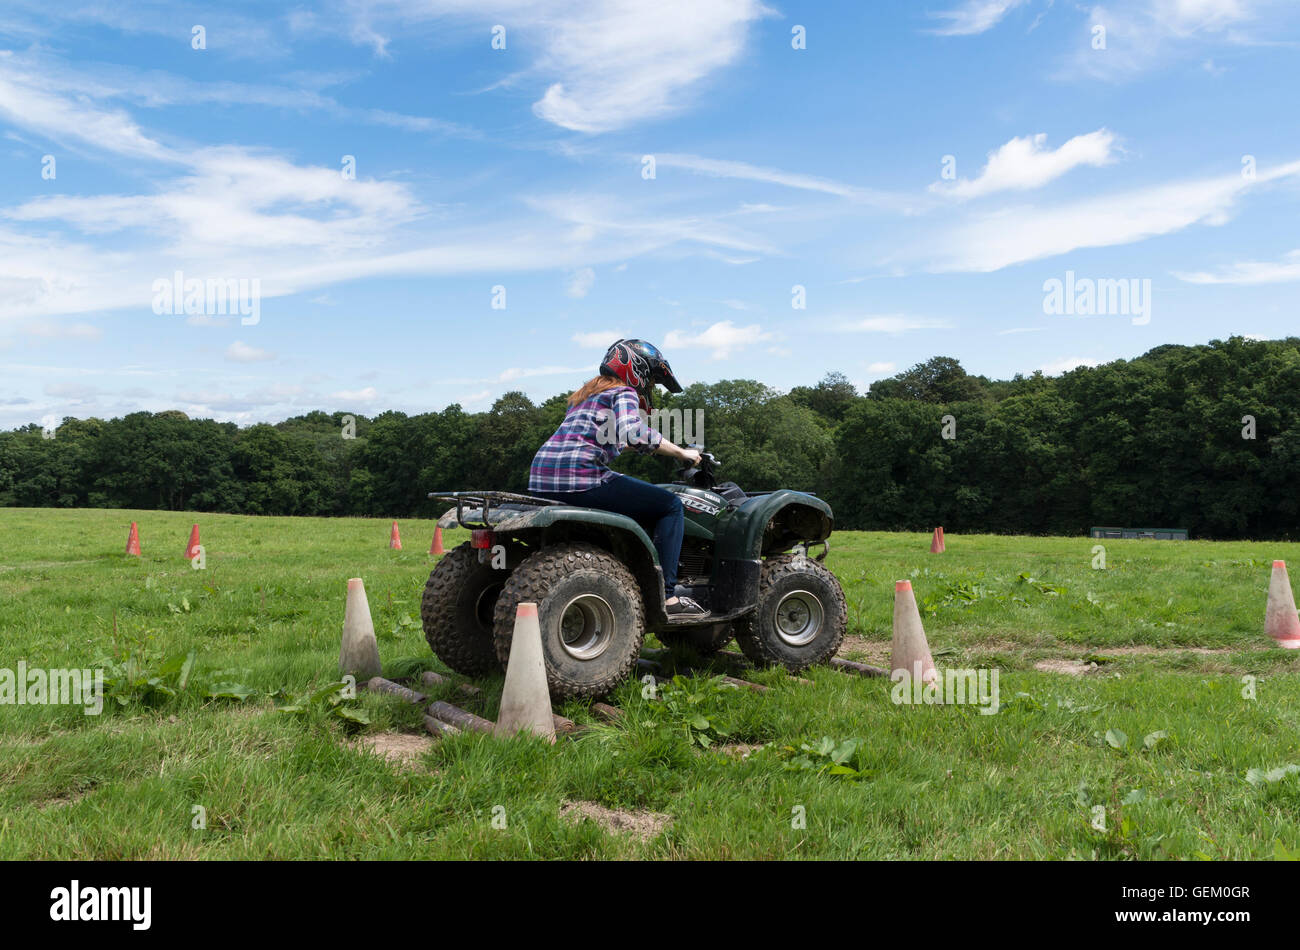 Redhaired girl in check shirt riding a quad bike in the countryside through obstacles on an outdoor pursuits day - Stock Image